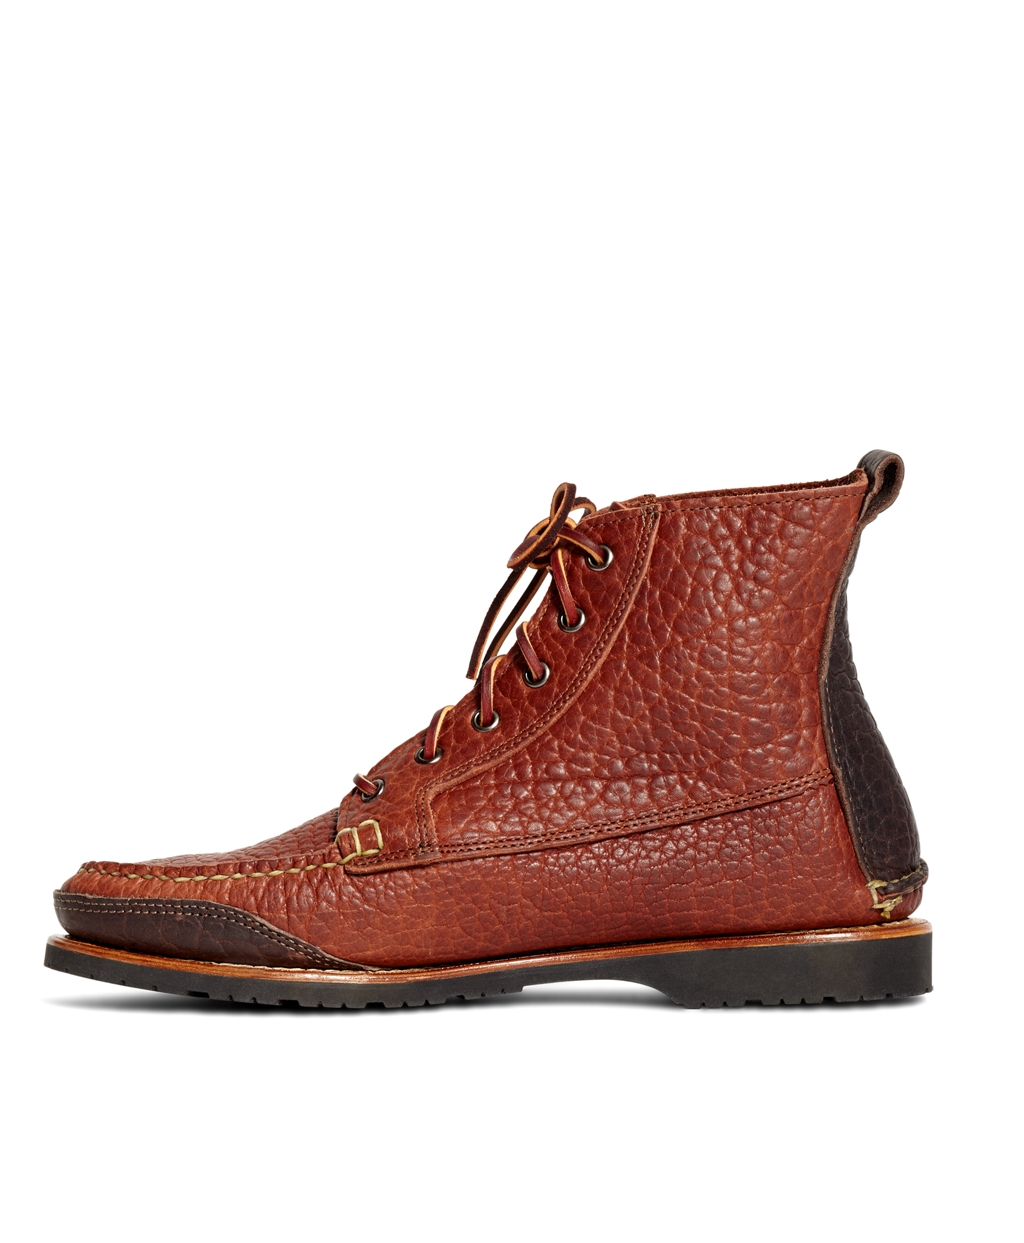 cf19f3b069cbb Brooks Brothers Rugged Leather Boots in Brown for Men - Lyst